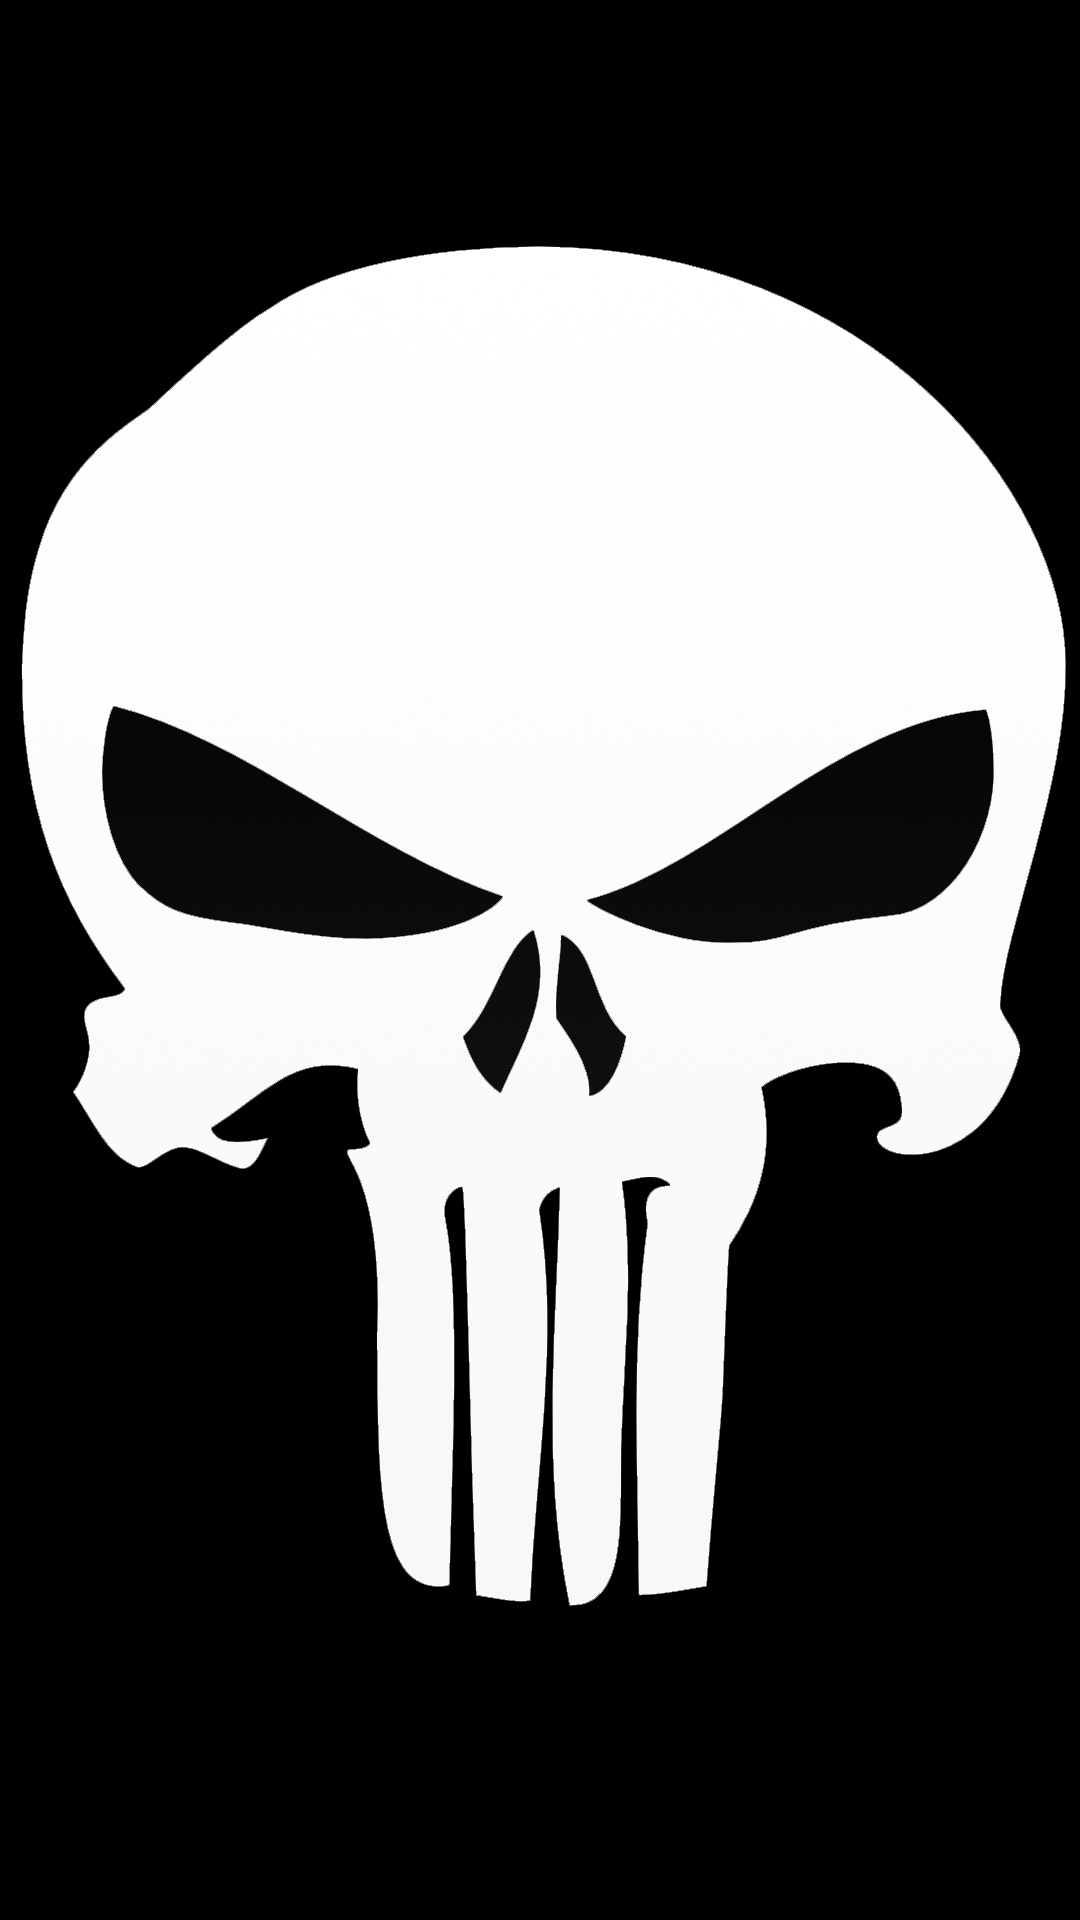 ultra hd punisher skull wallpaper for your mobile phone 0223